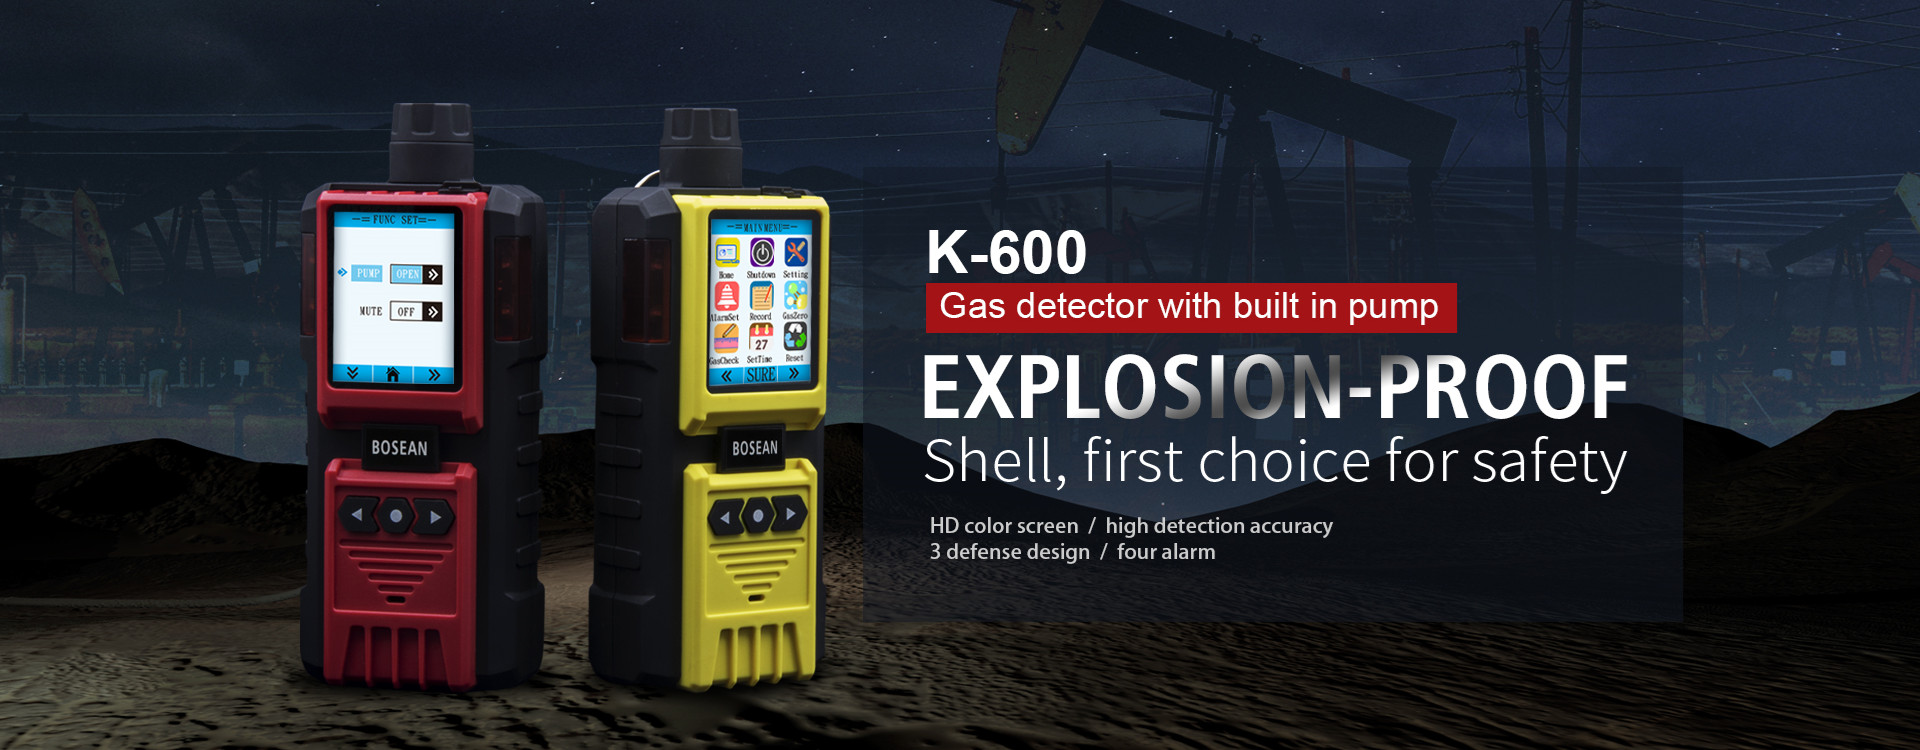 K-600 gas detector with built in pump